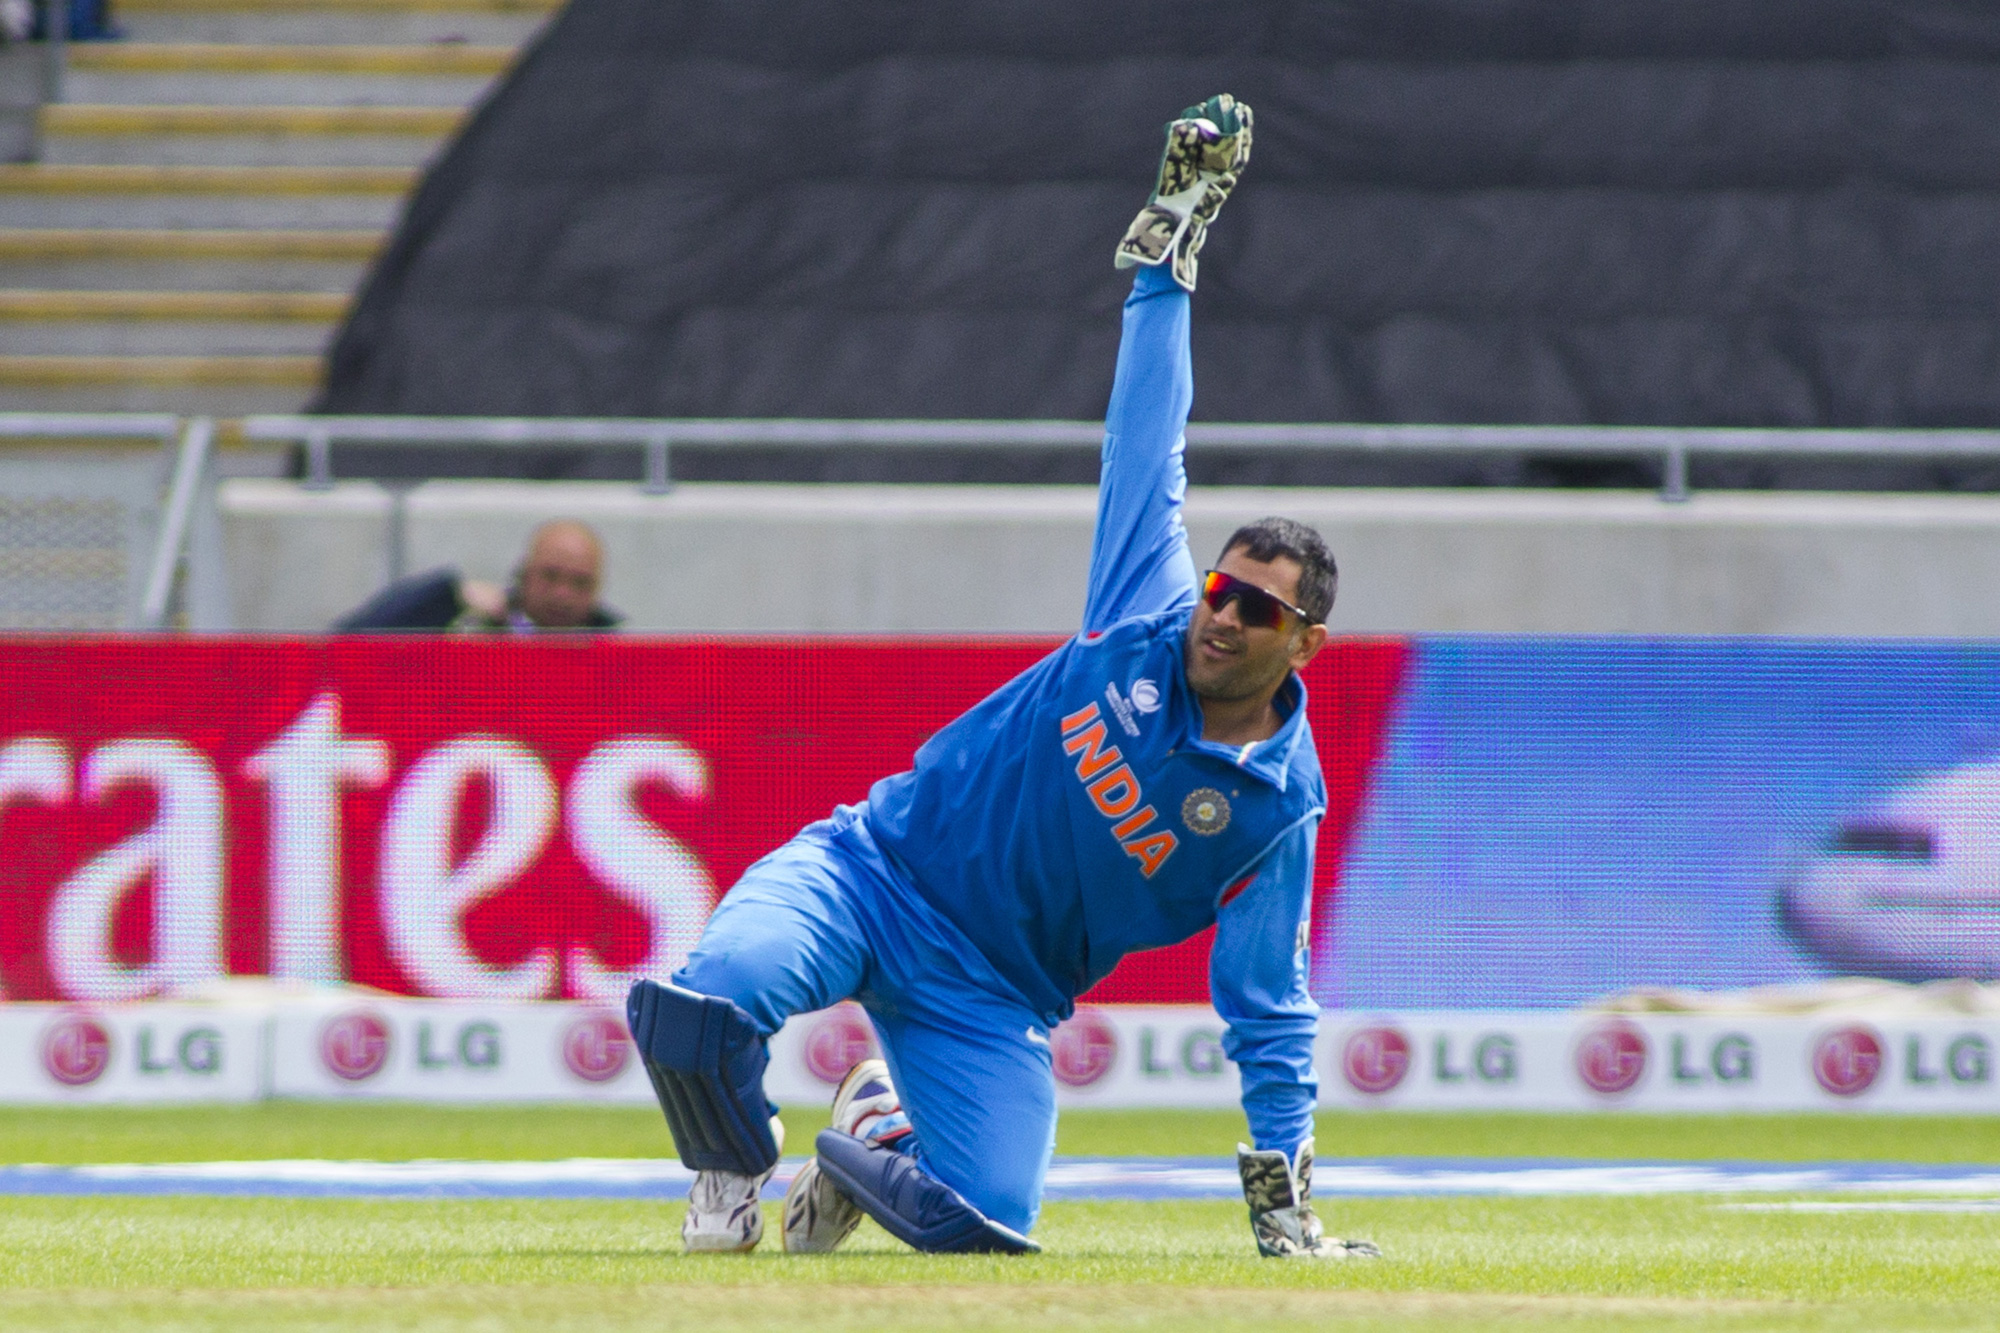 Mahendra Singh Dhoni returns to India's T20I squad for the series against New Zealand starting February 6